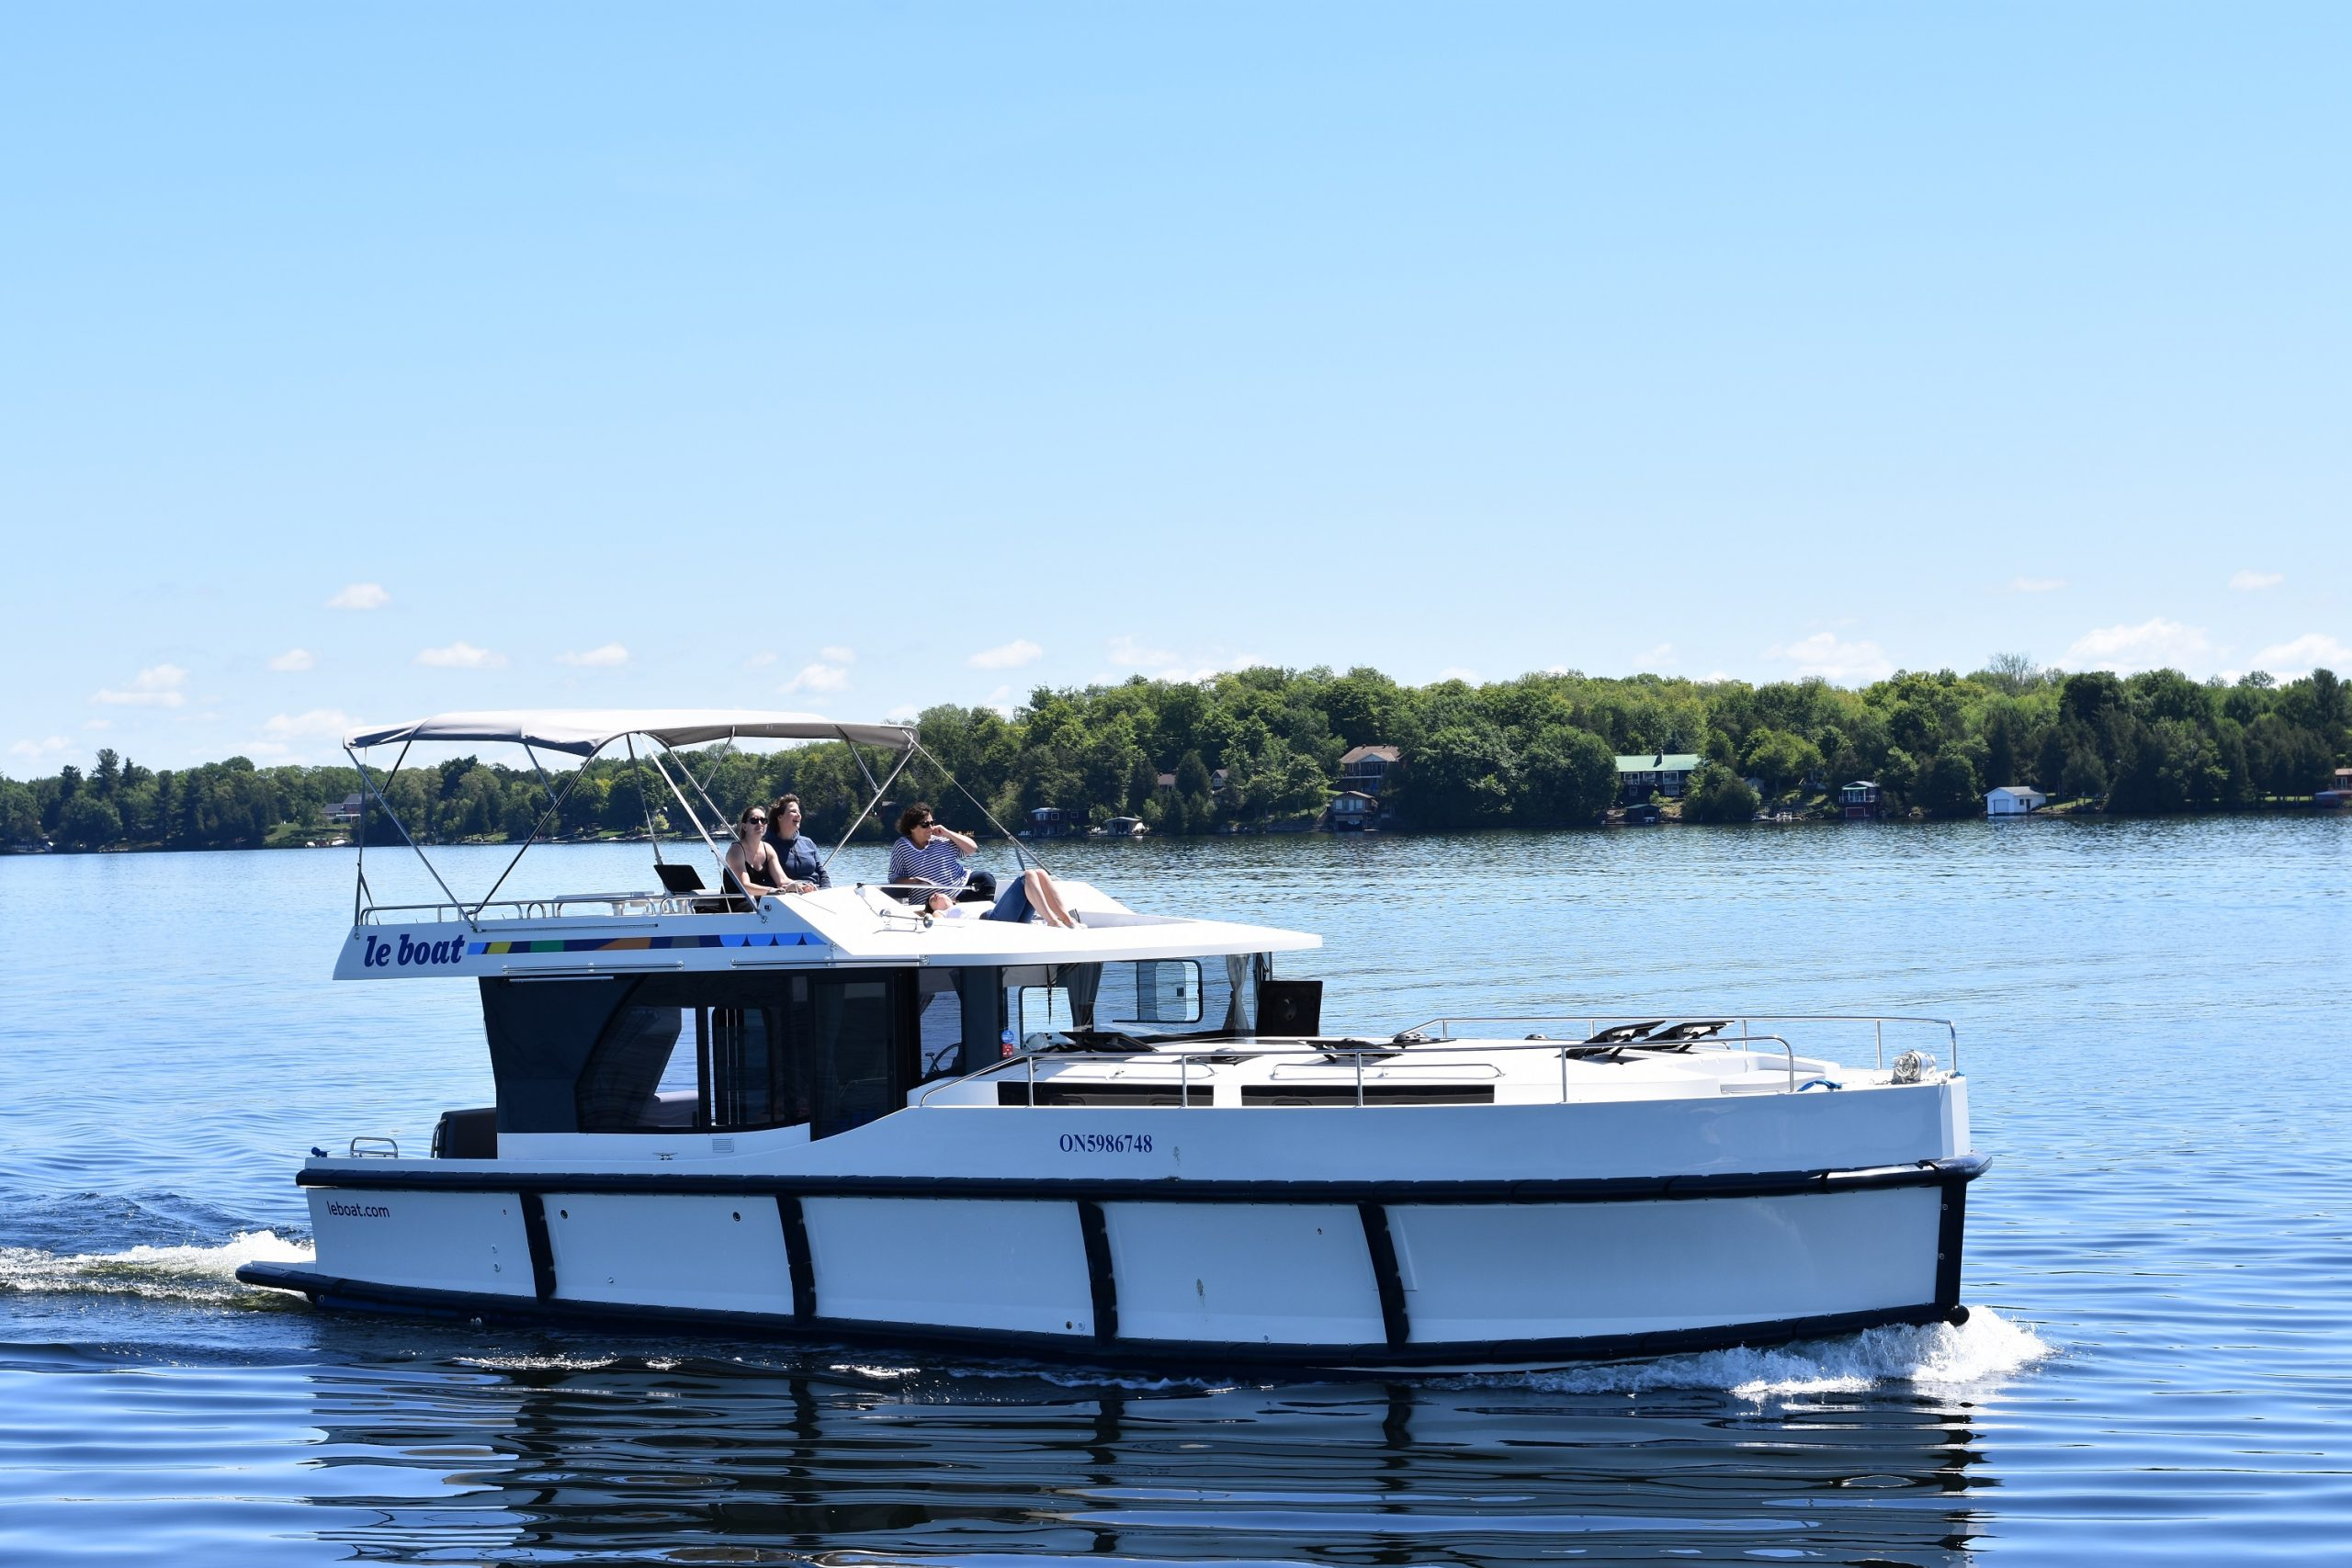 Le Boat private yacht cruising Rideau lakes